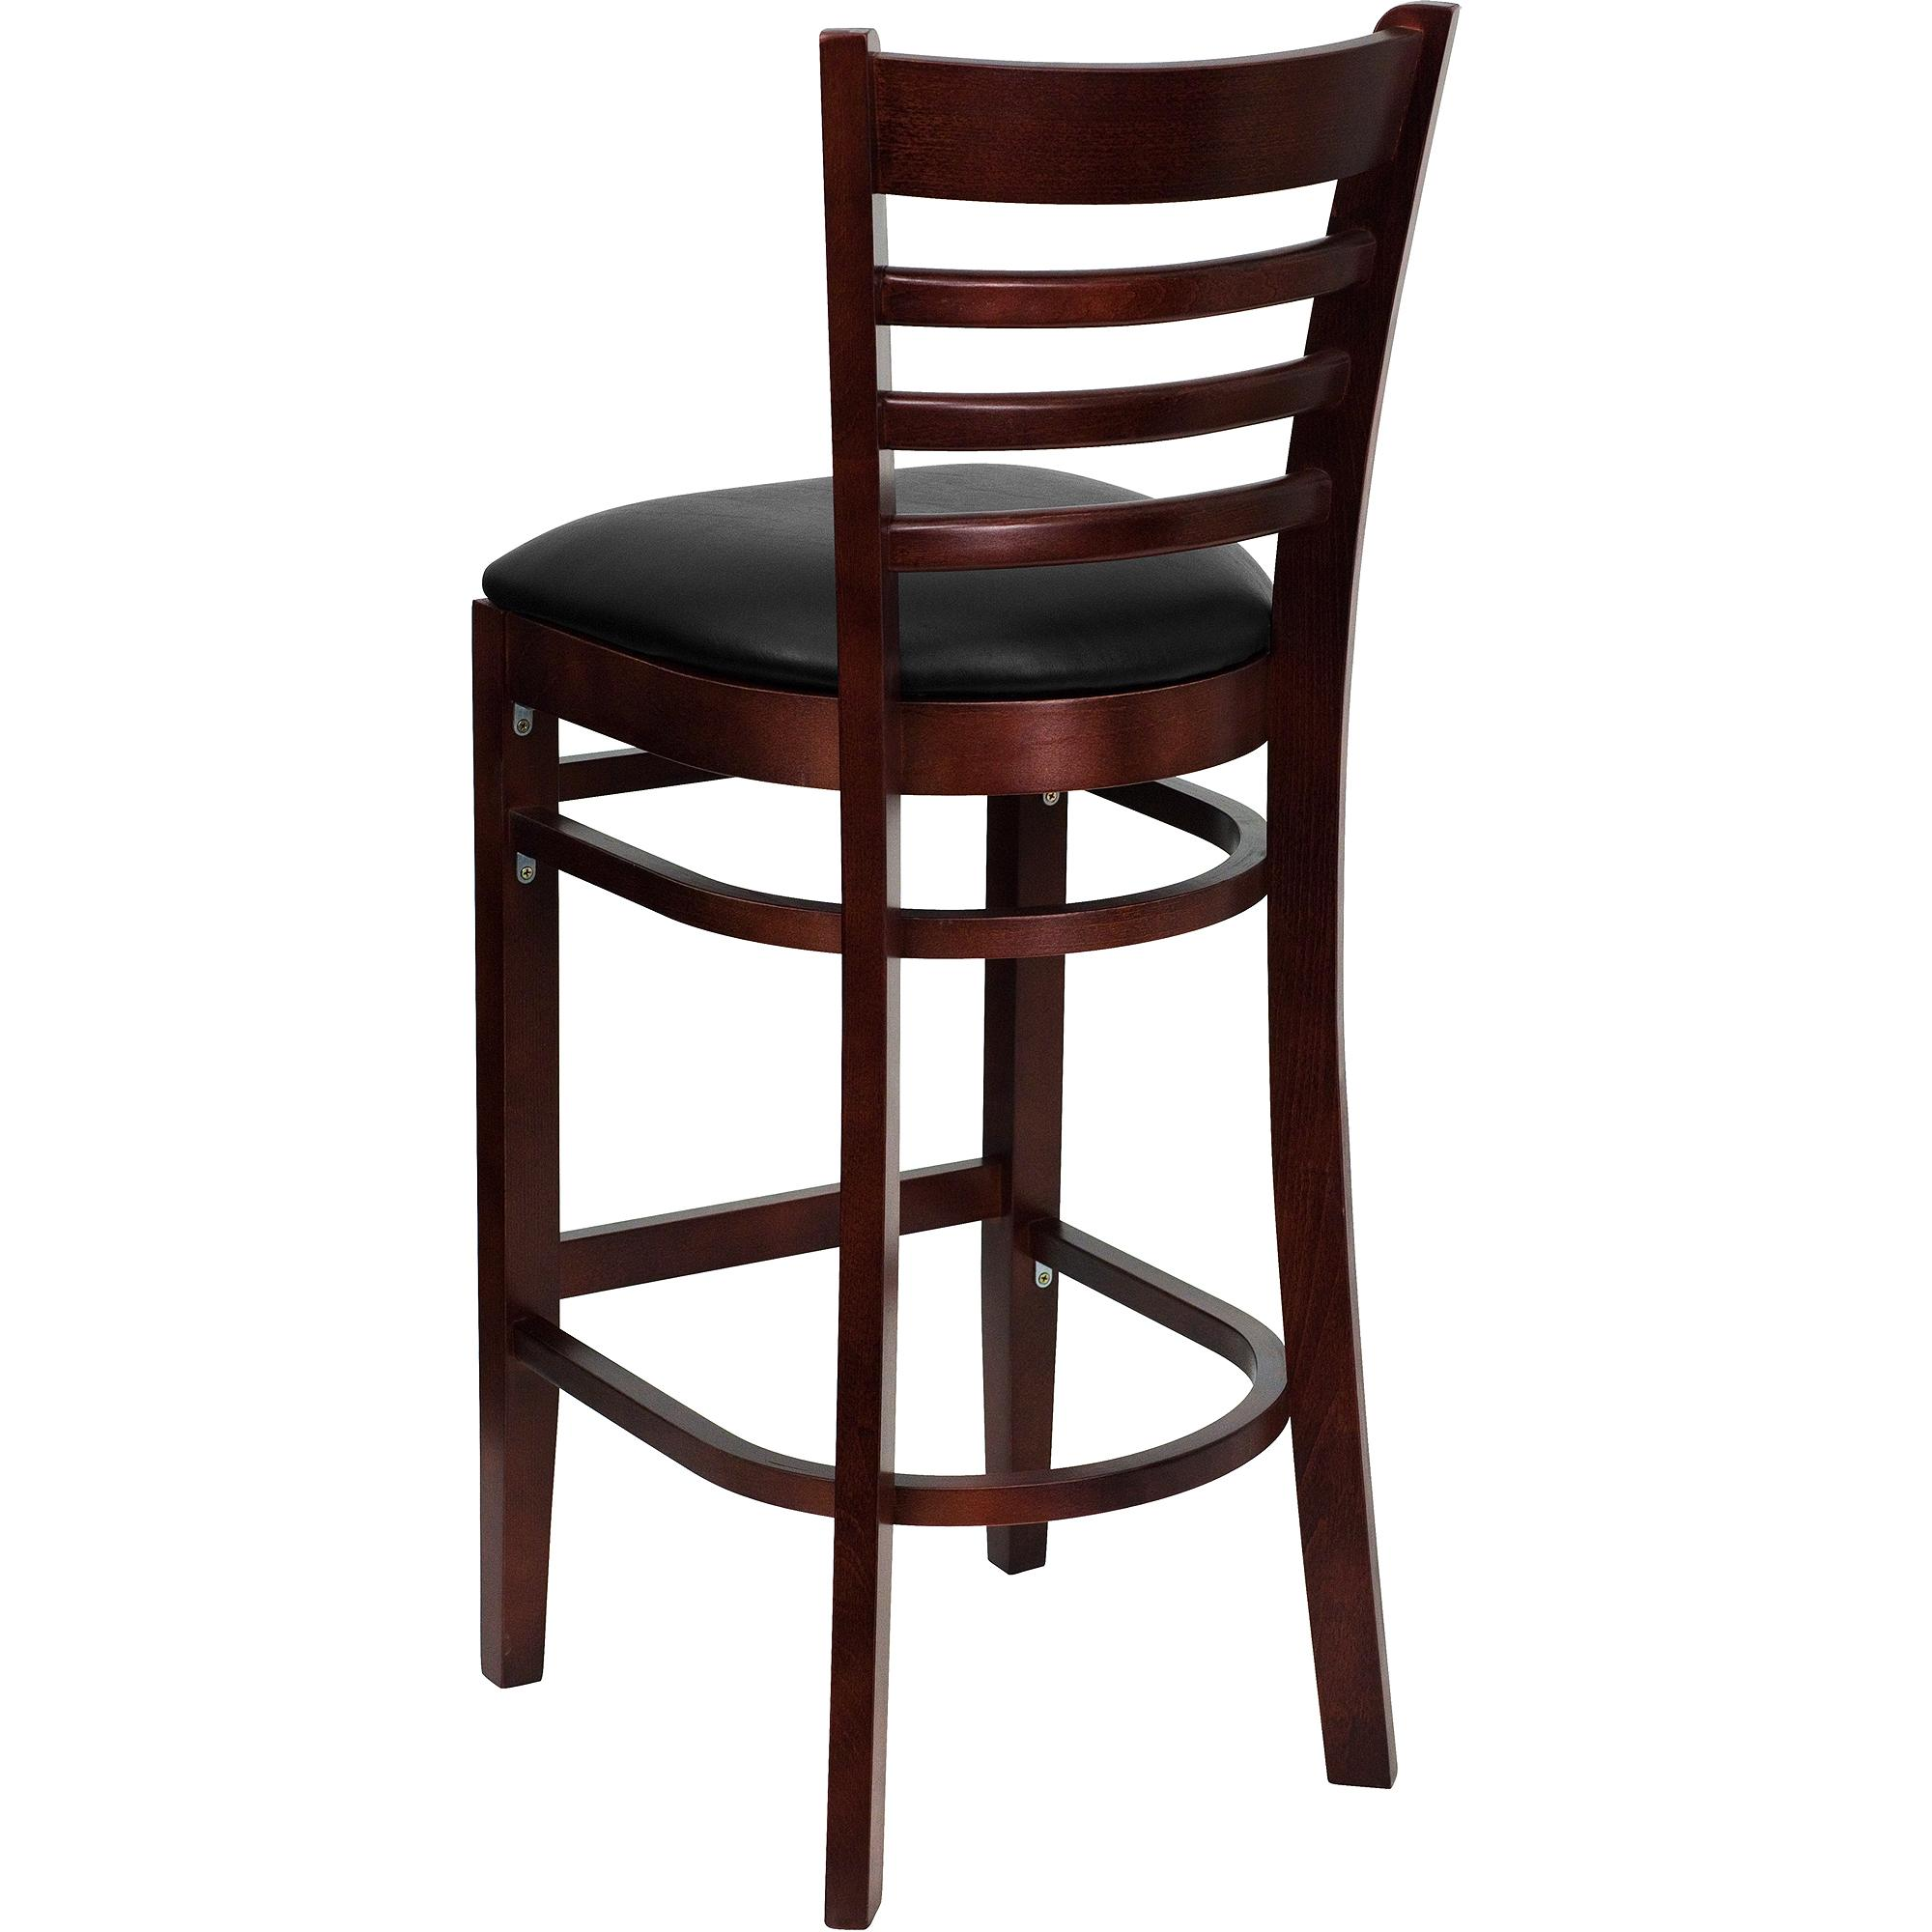 Furniture Charming Wooden Cymax Bar Stools In Dark Brown For Home